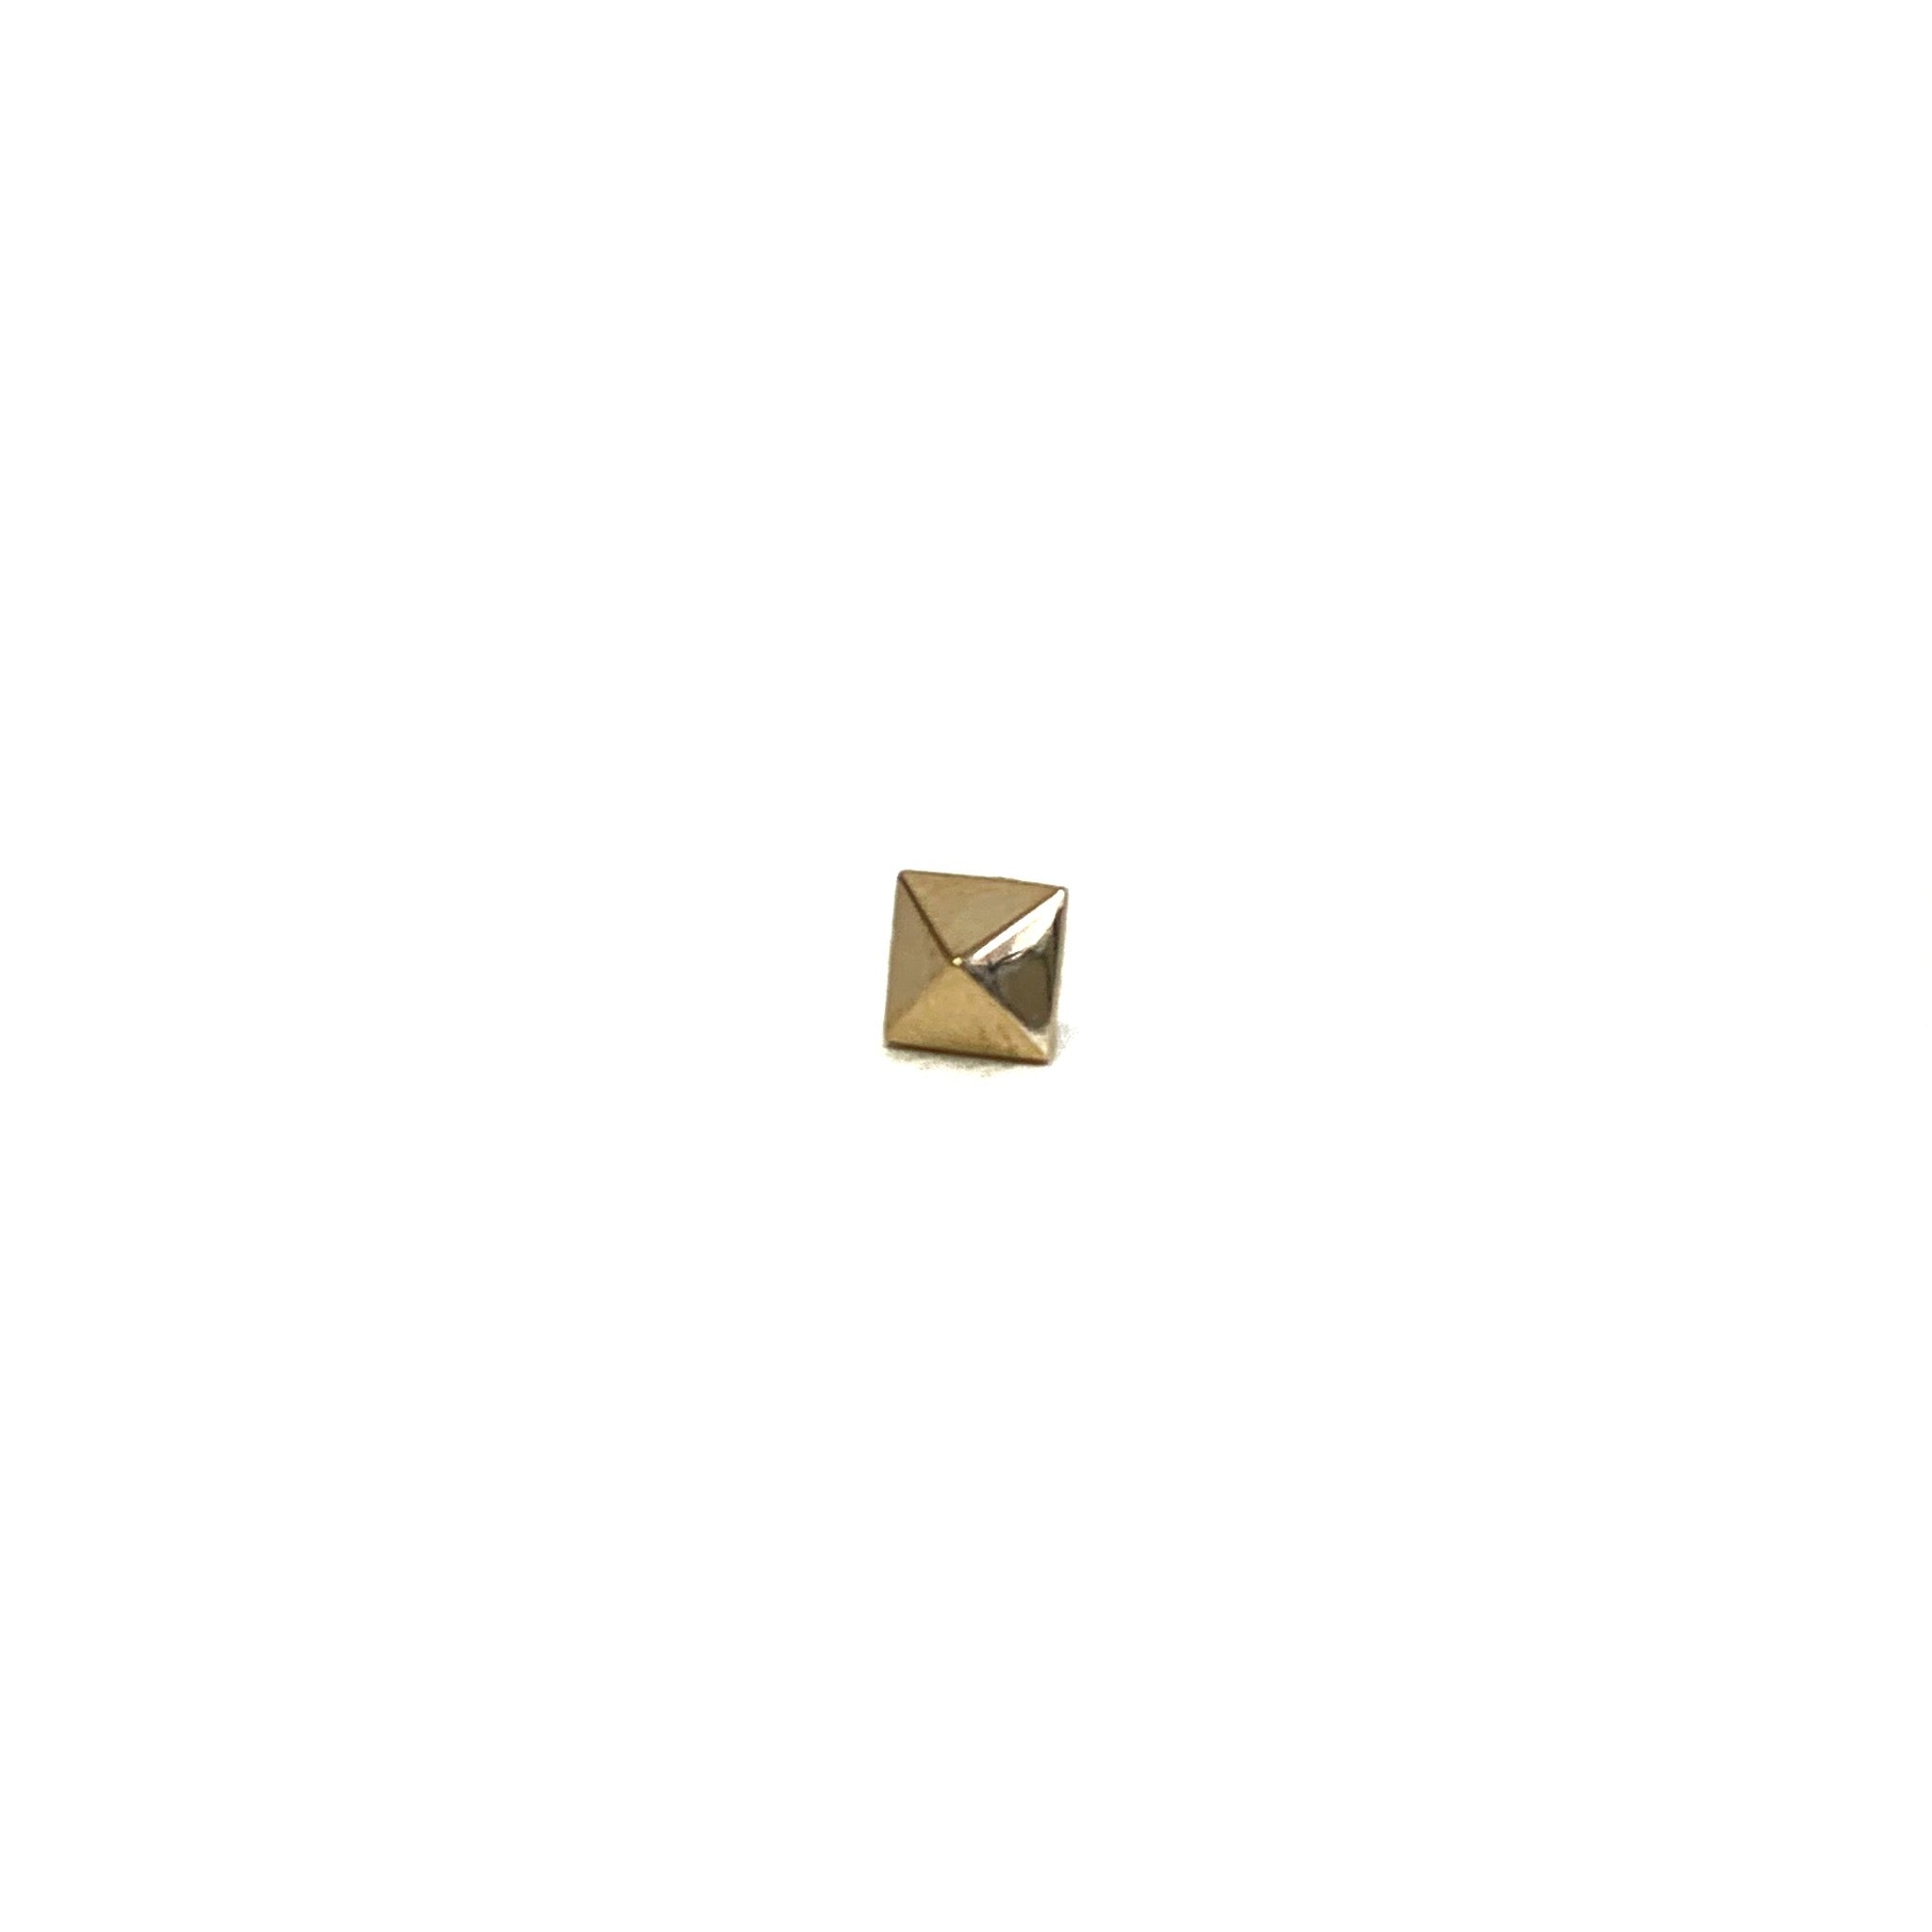 14K Gold Pyramid Stud